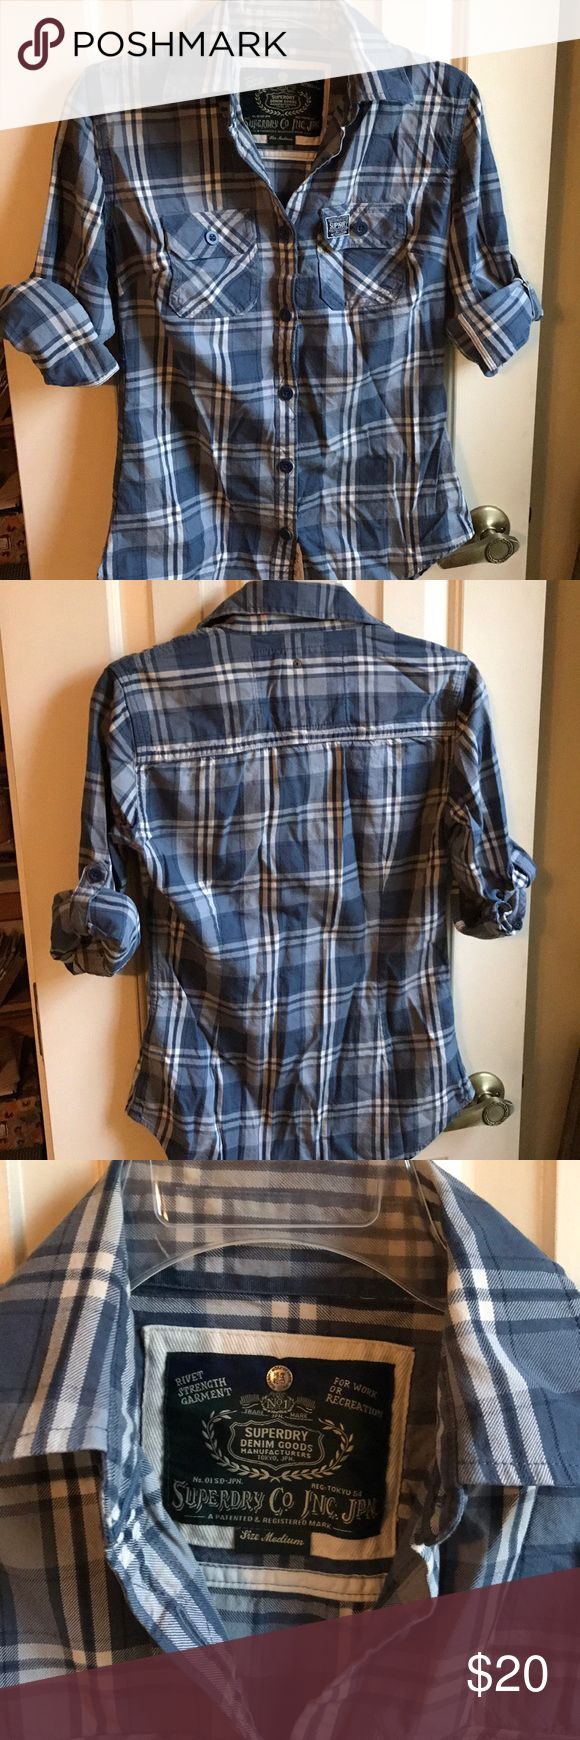 Plaid Superdry button up Great blue and white plaid button-up top with 3/4 length roll-up sleeves. Extra buttons included. 100%cotton. Very thick and warm. Medium but runs small. Superdry Tops Button Down Shirts